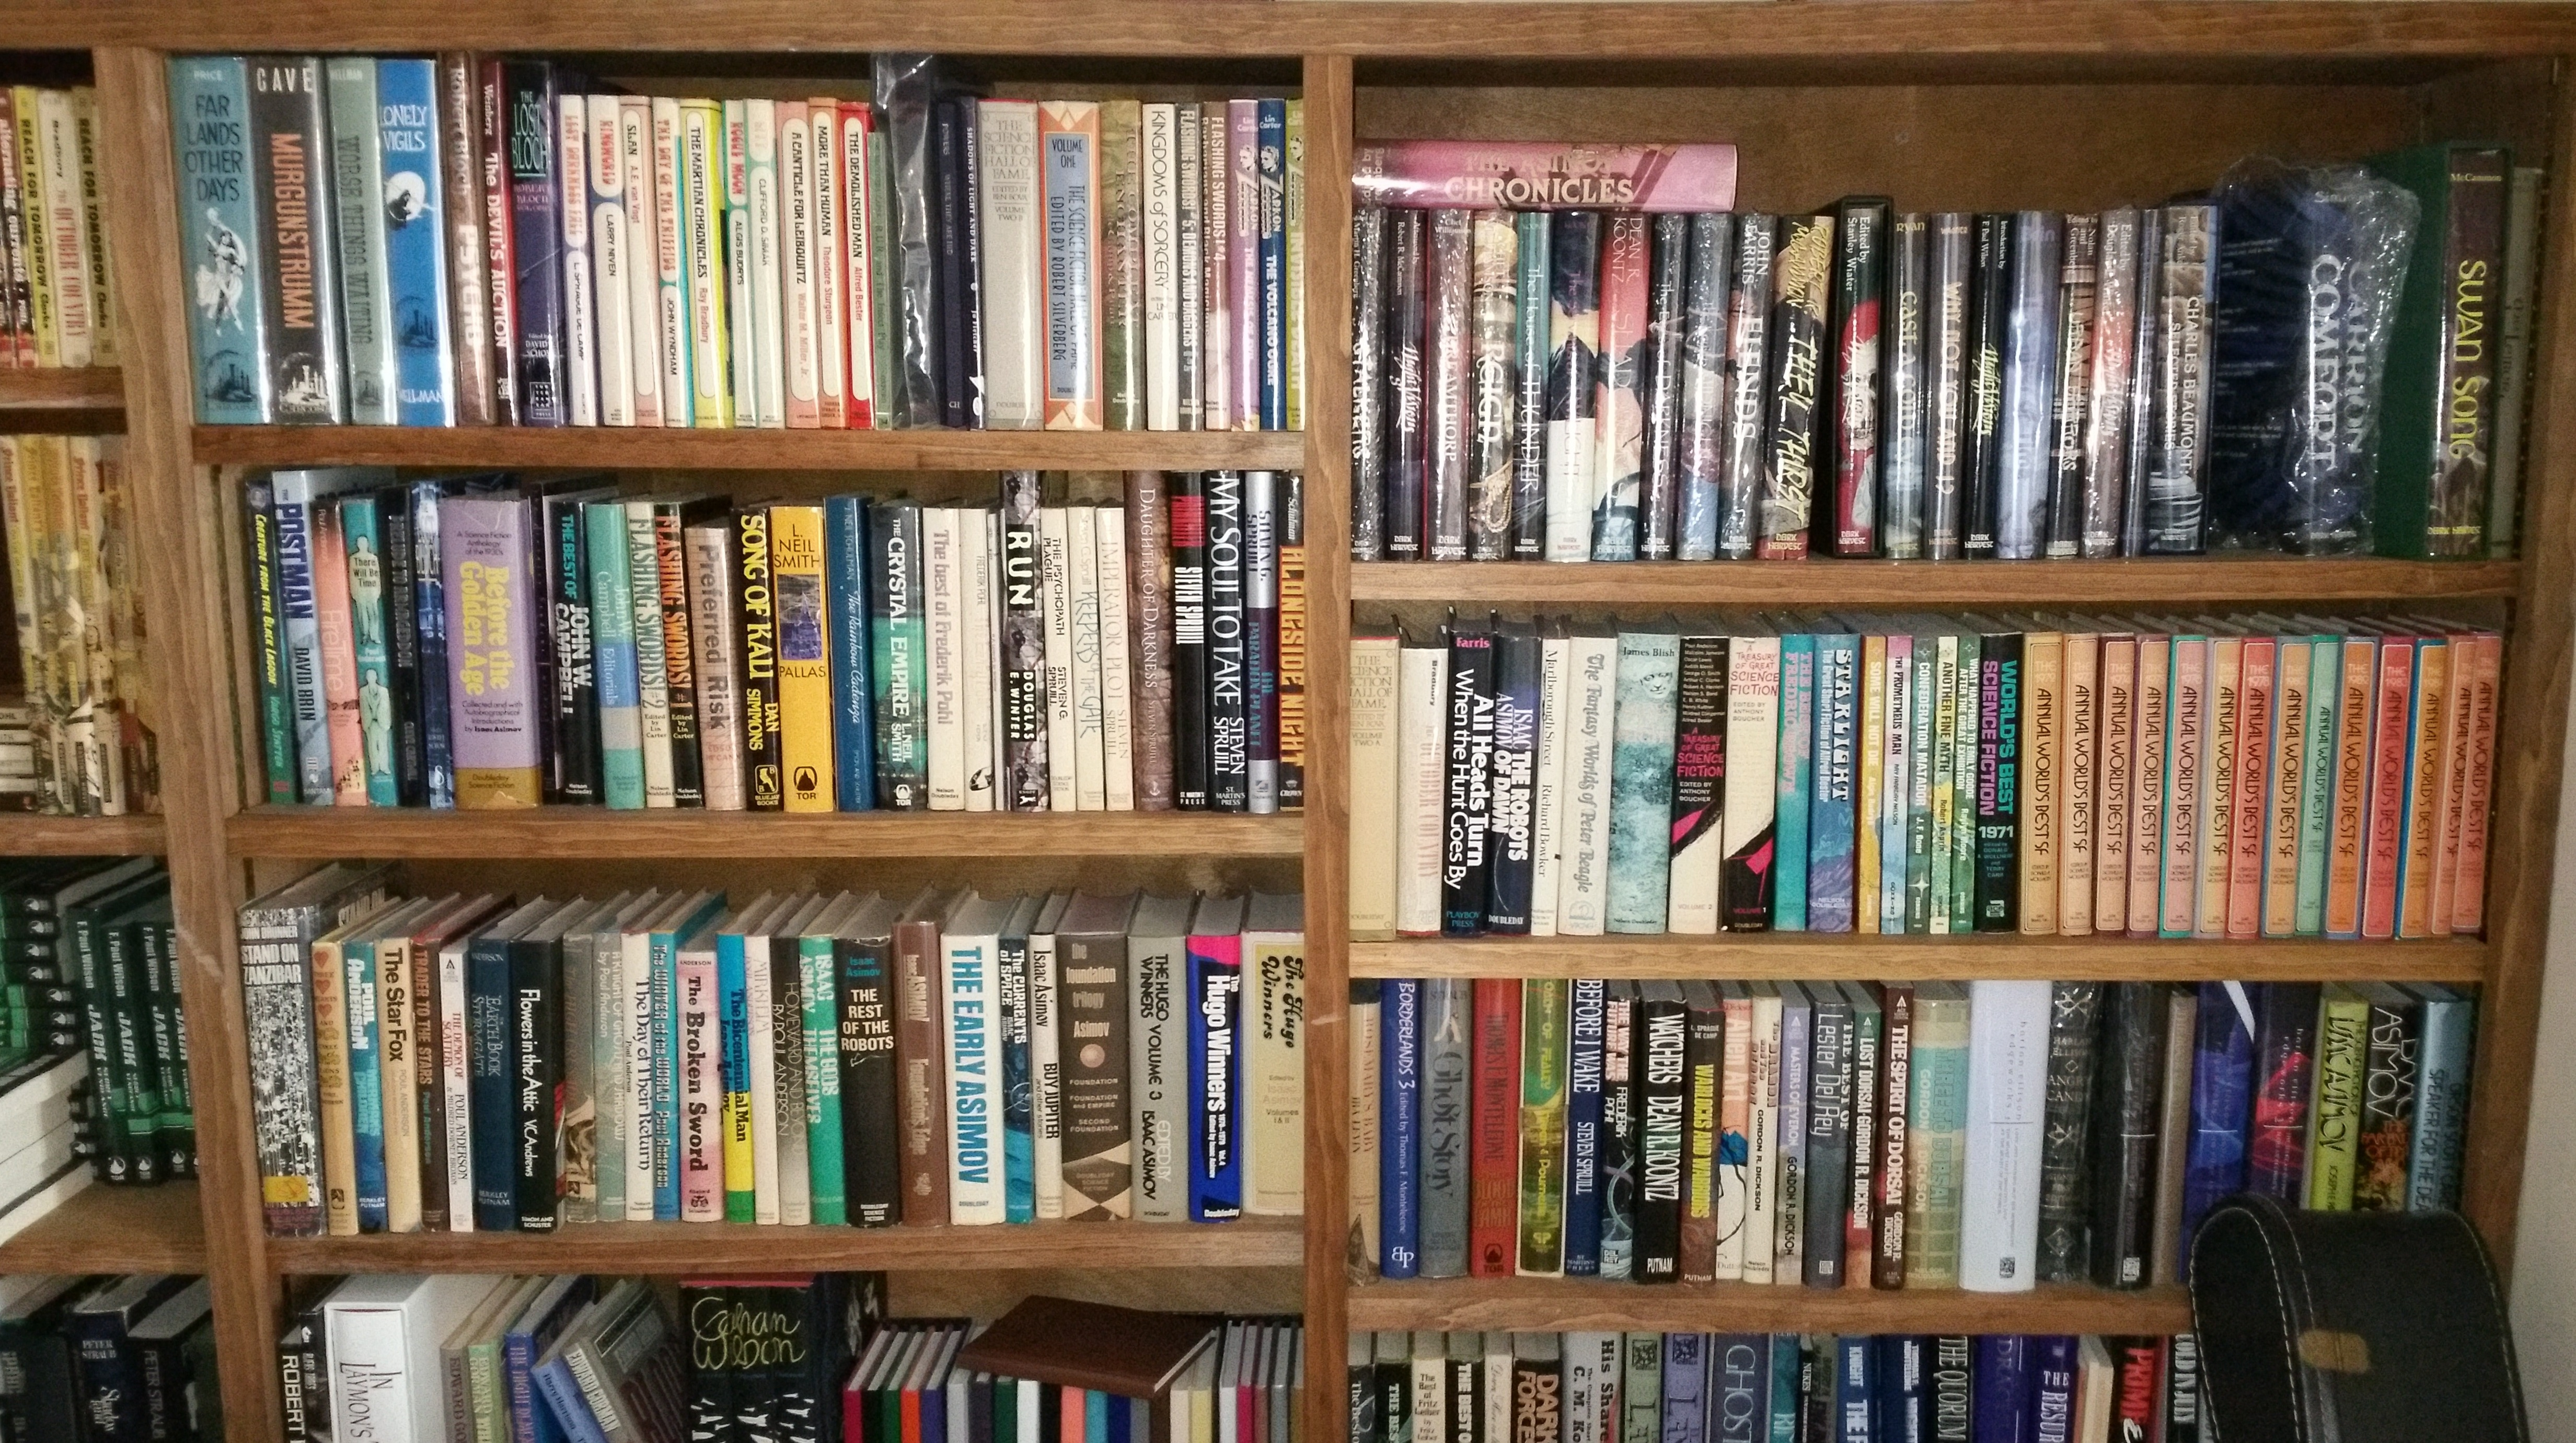 Shelfie: Turn Your Paper Books Into E-books and Audio Books | Time